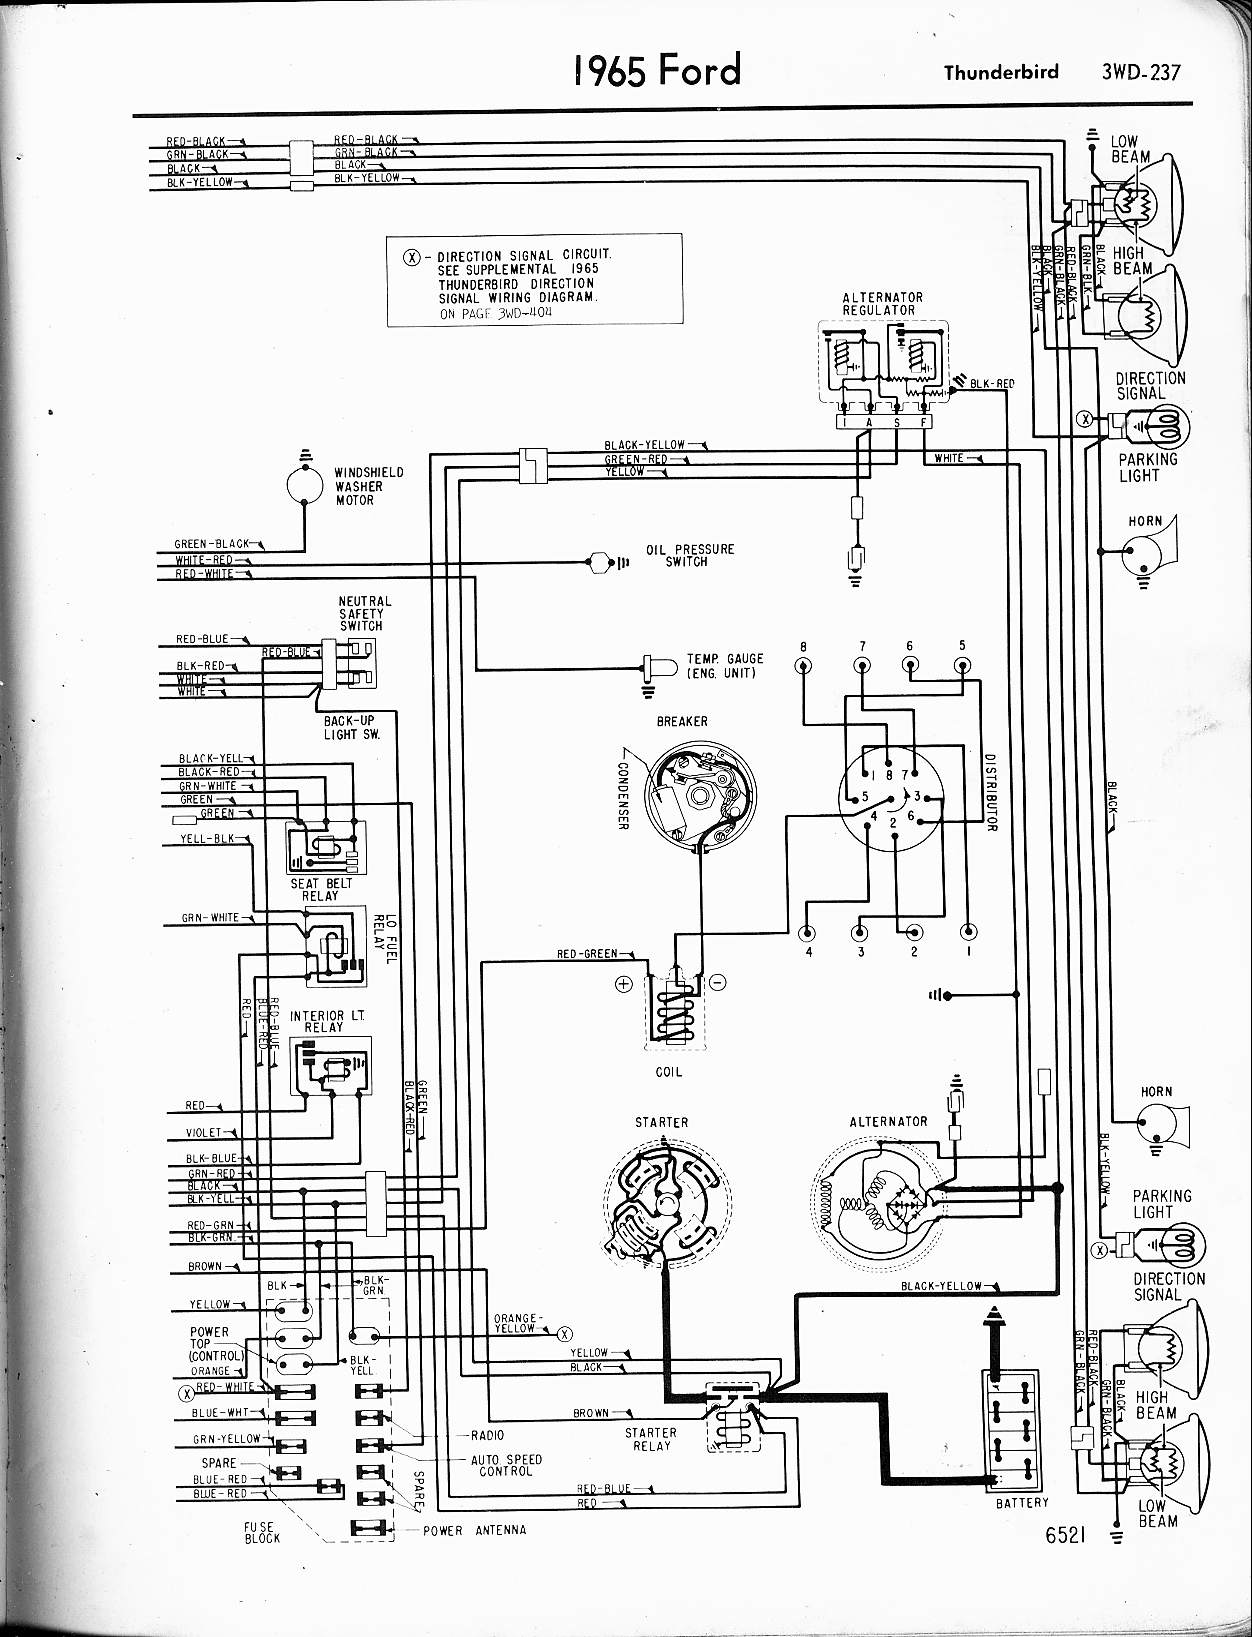 MWire5765 237 57 65 ford wiring diagrams  at bakdesigns.co